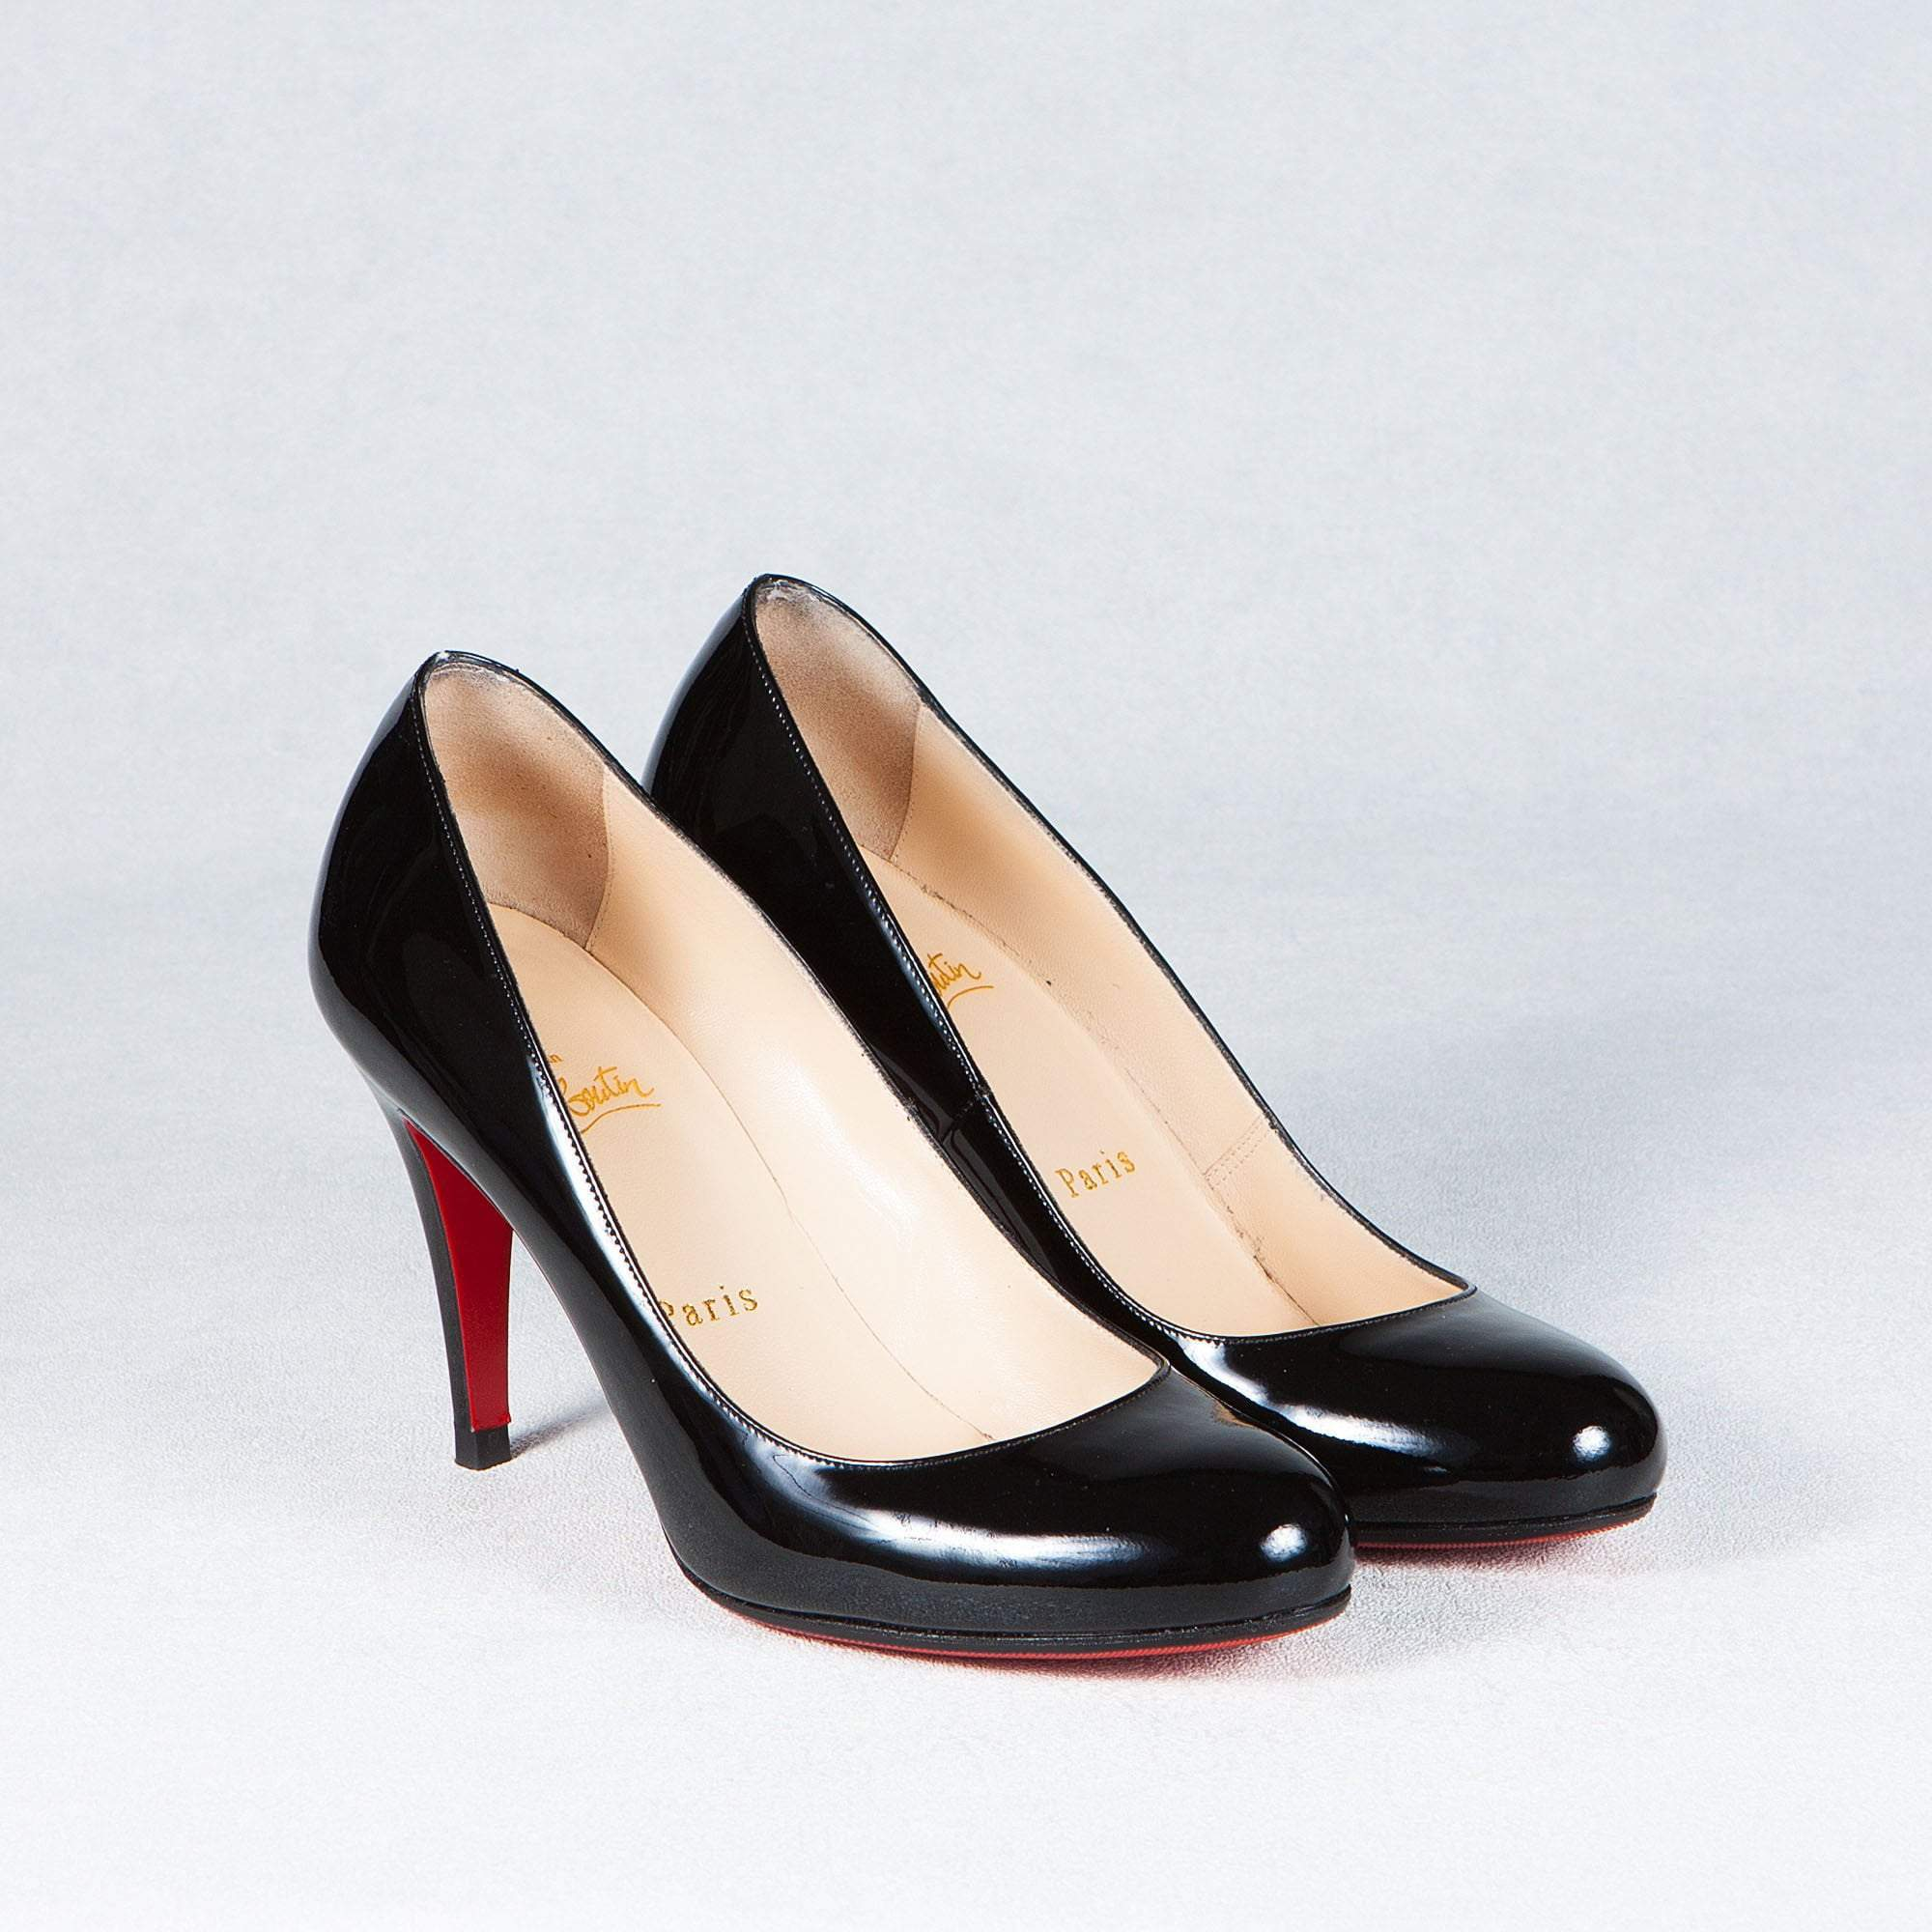 Christian Louboutin Black Round Toe Pumps